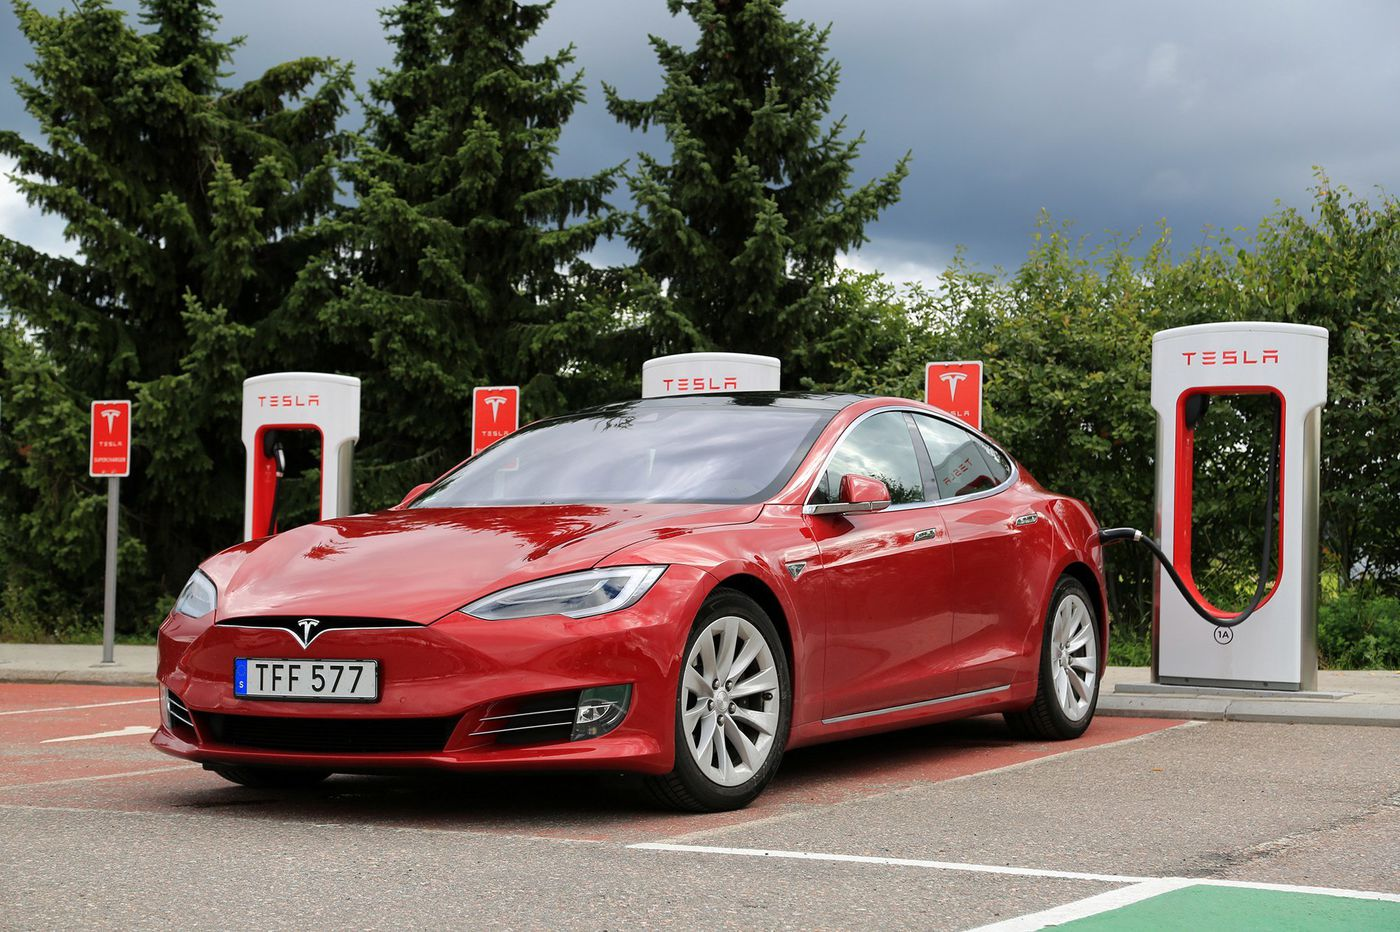 Electric cars: Owned by few, subsidized by all | Opinion